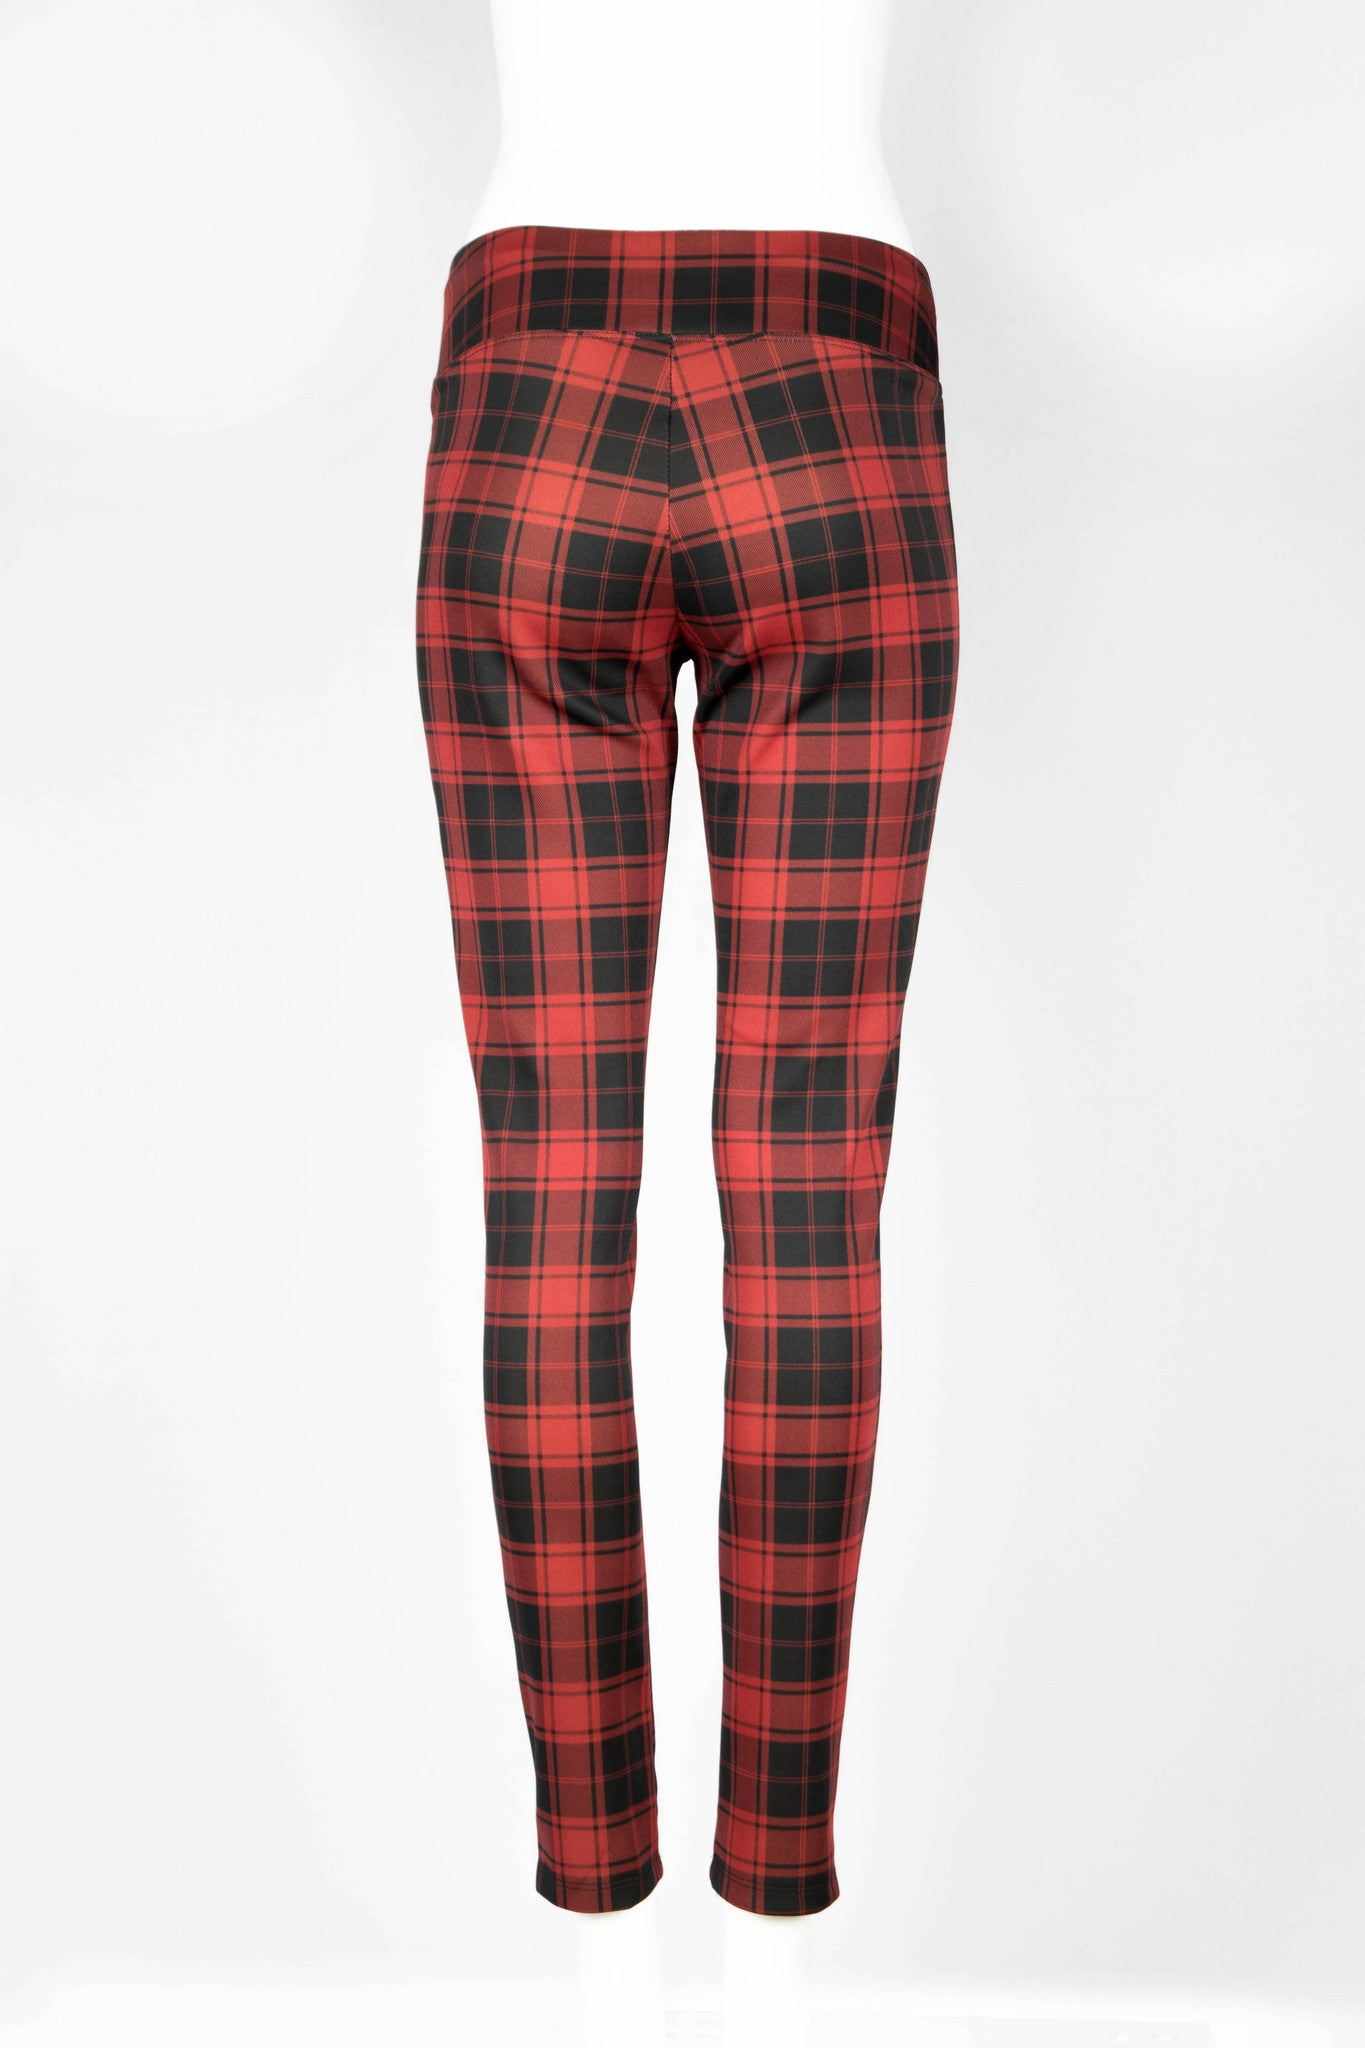 Aubrey Plaid Fitted Pants - ANA MARIA KIM  - 8